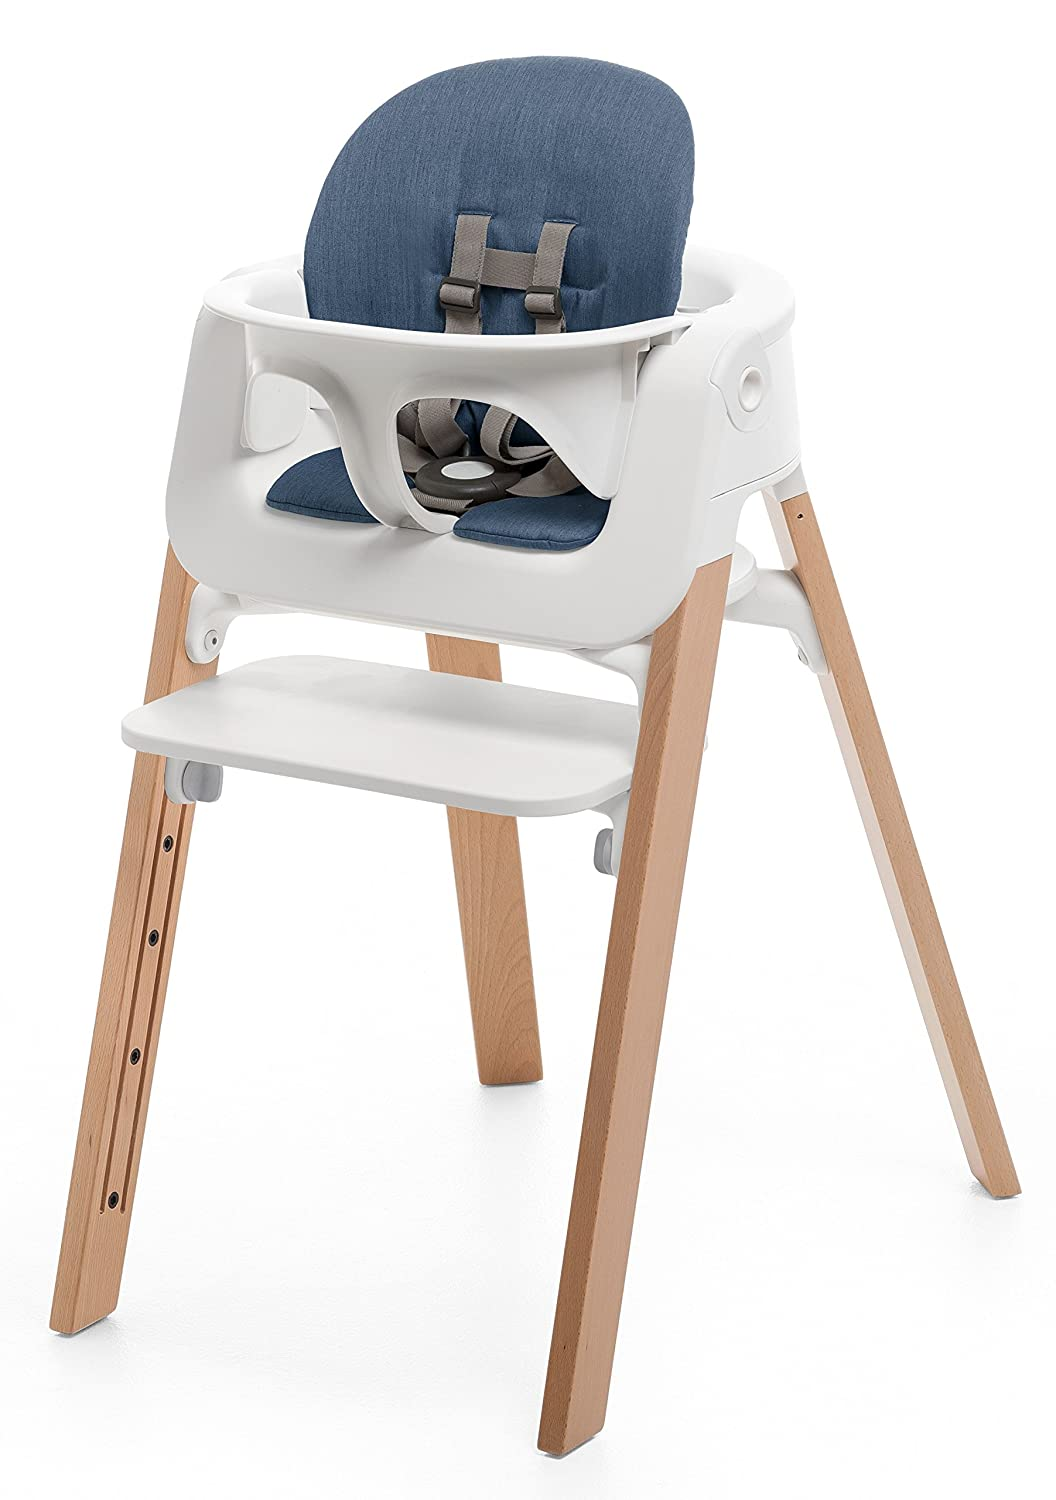 Stokke high chair blue - Stokke High Chair Blue 22